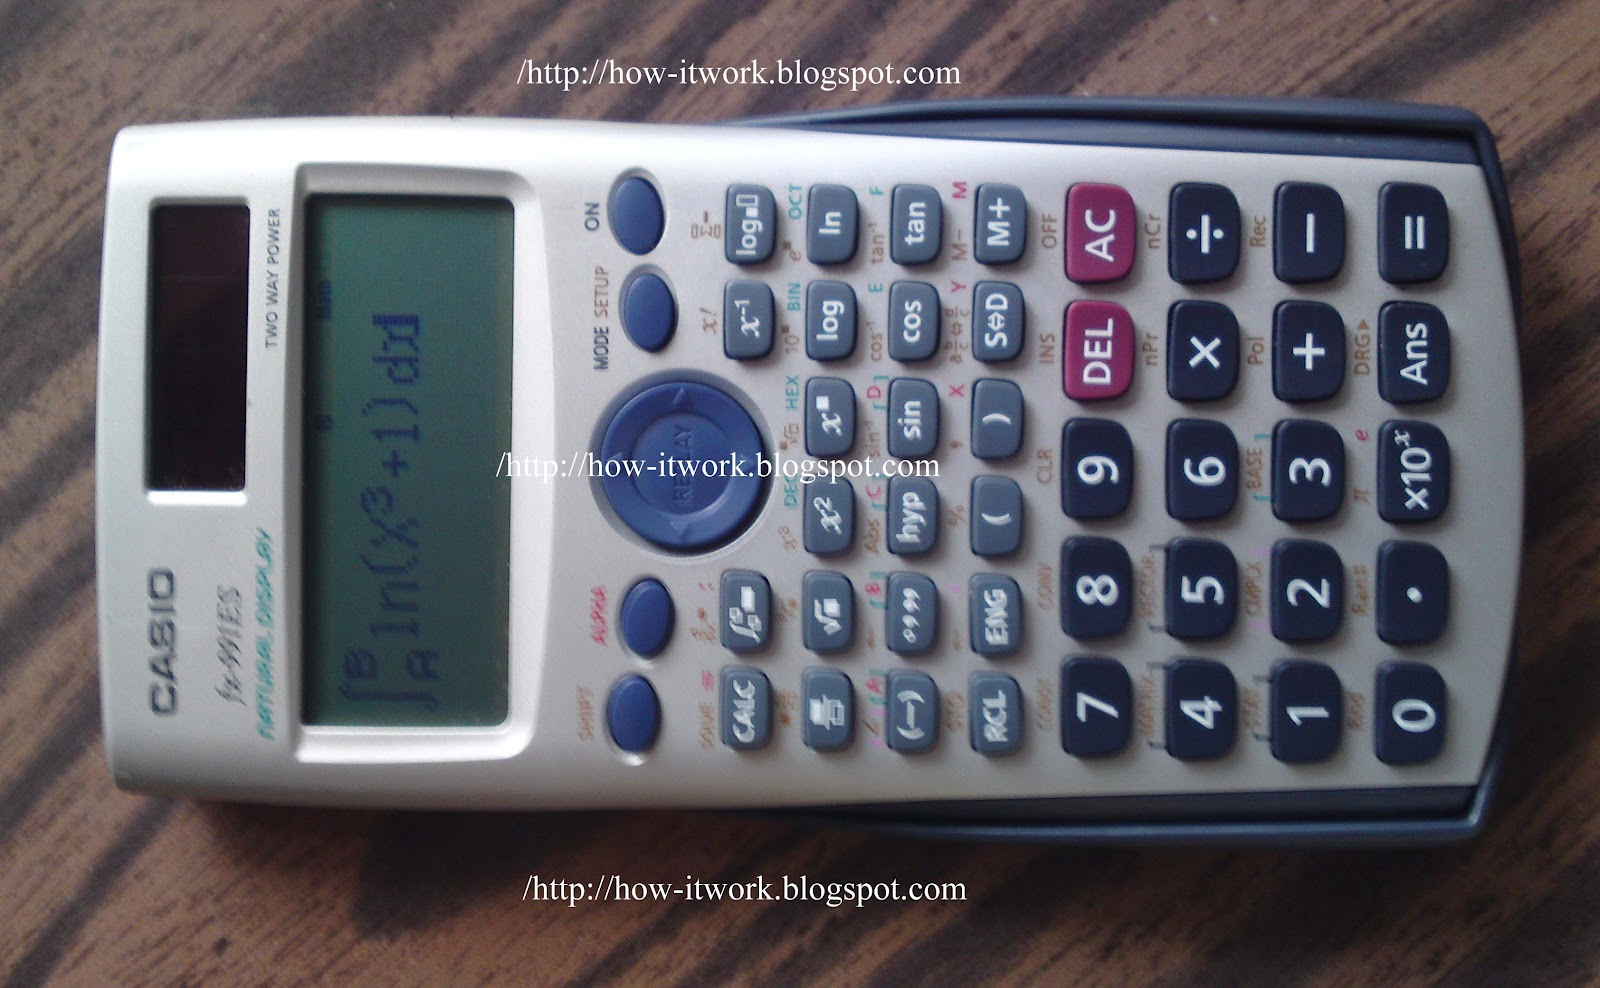 how to find integration in scientific calculator